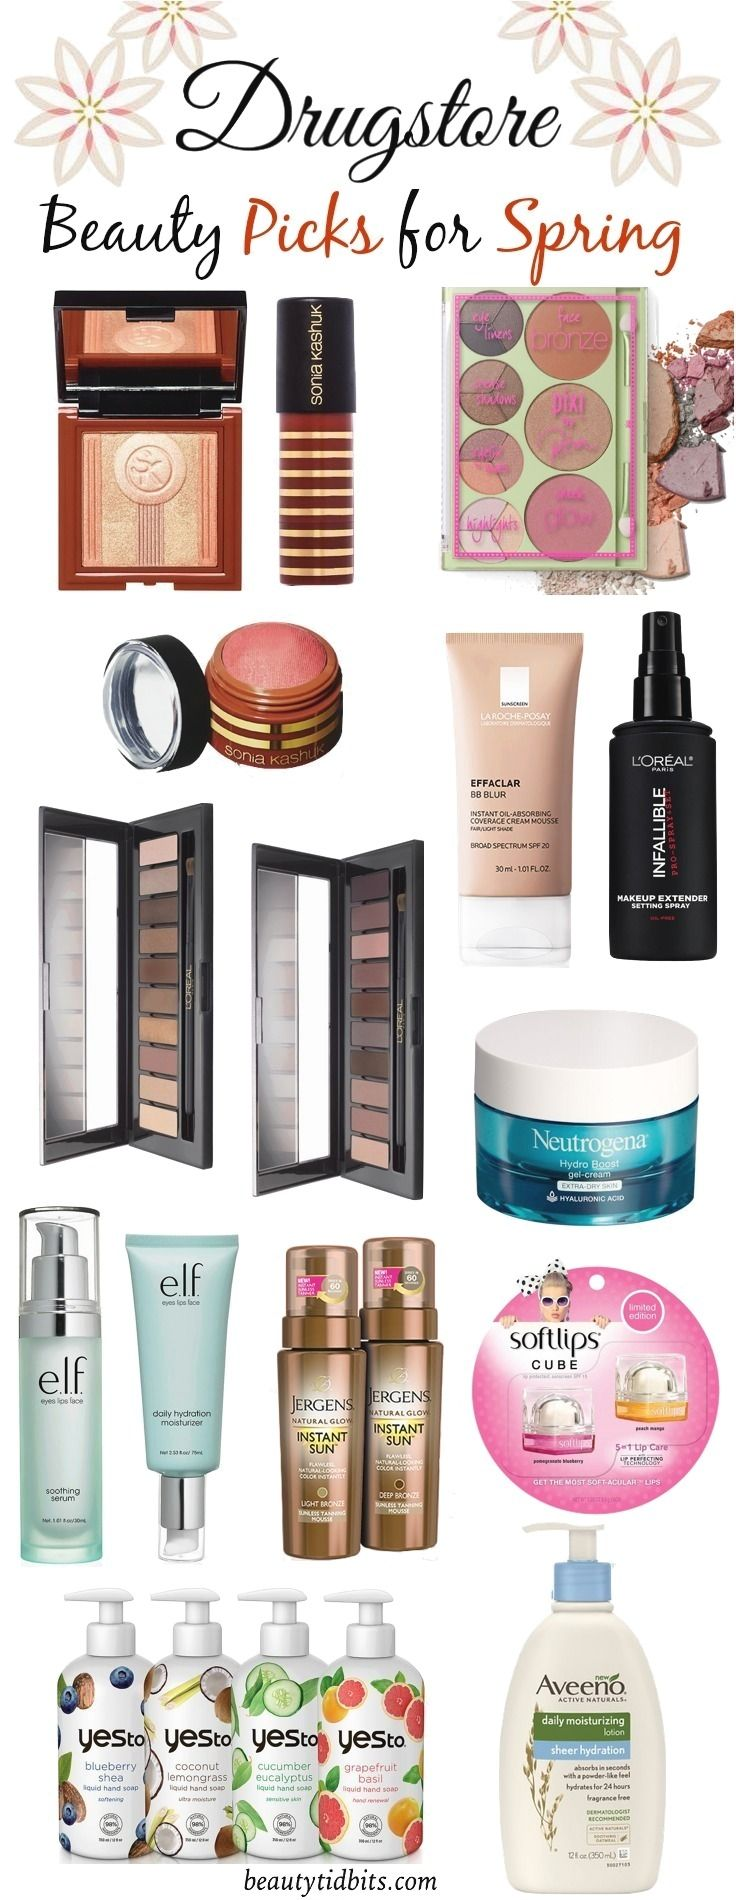 Drugstore Makeup and Beauty Picks for Spring